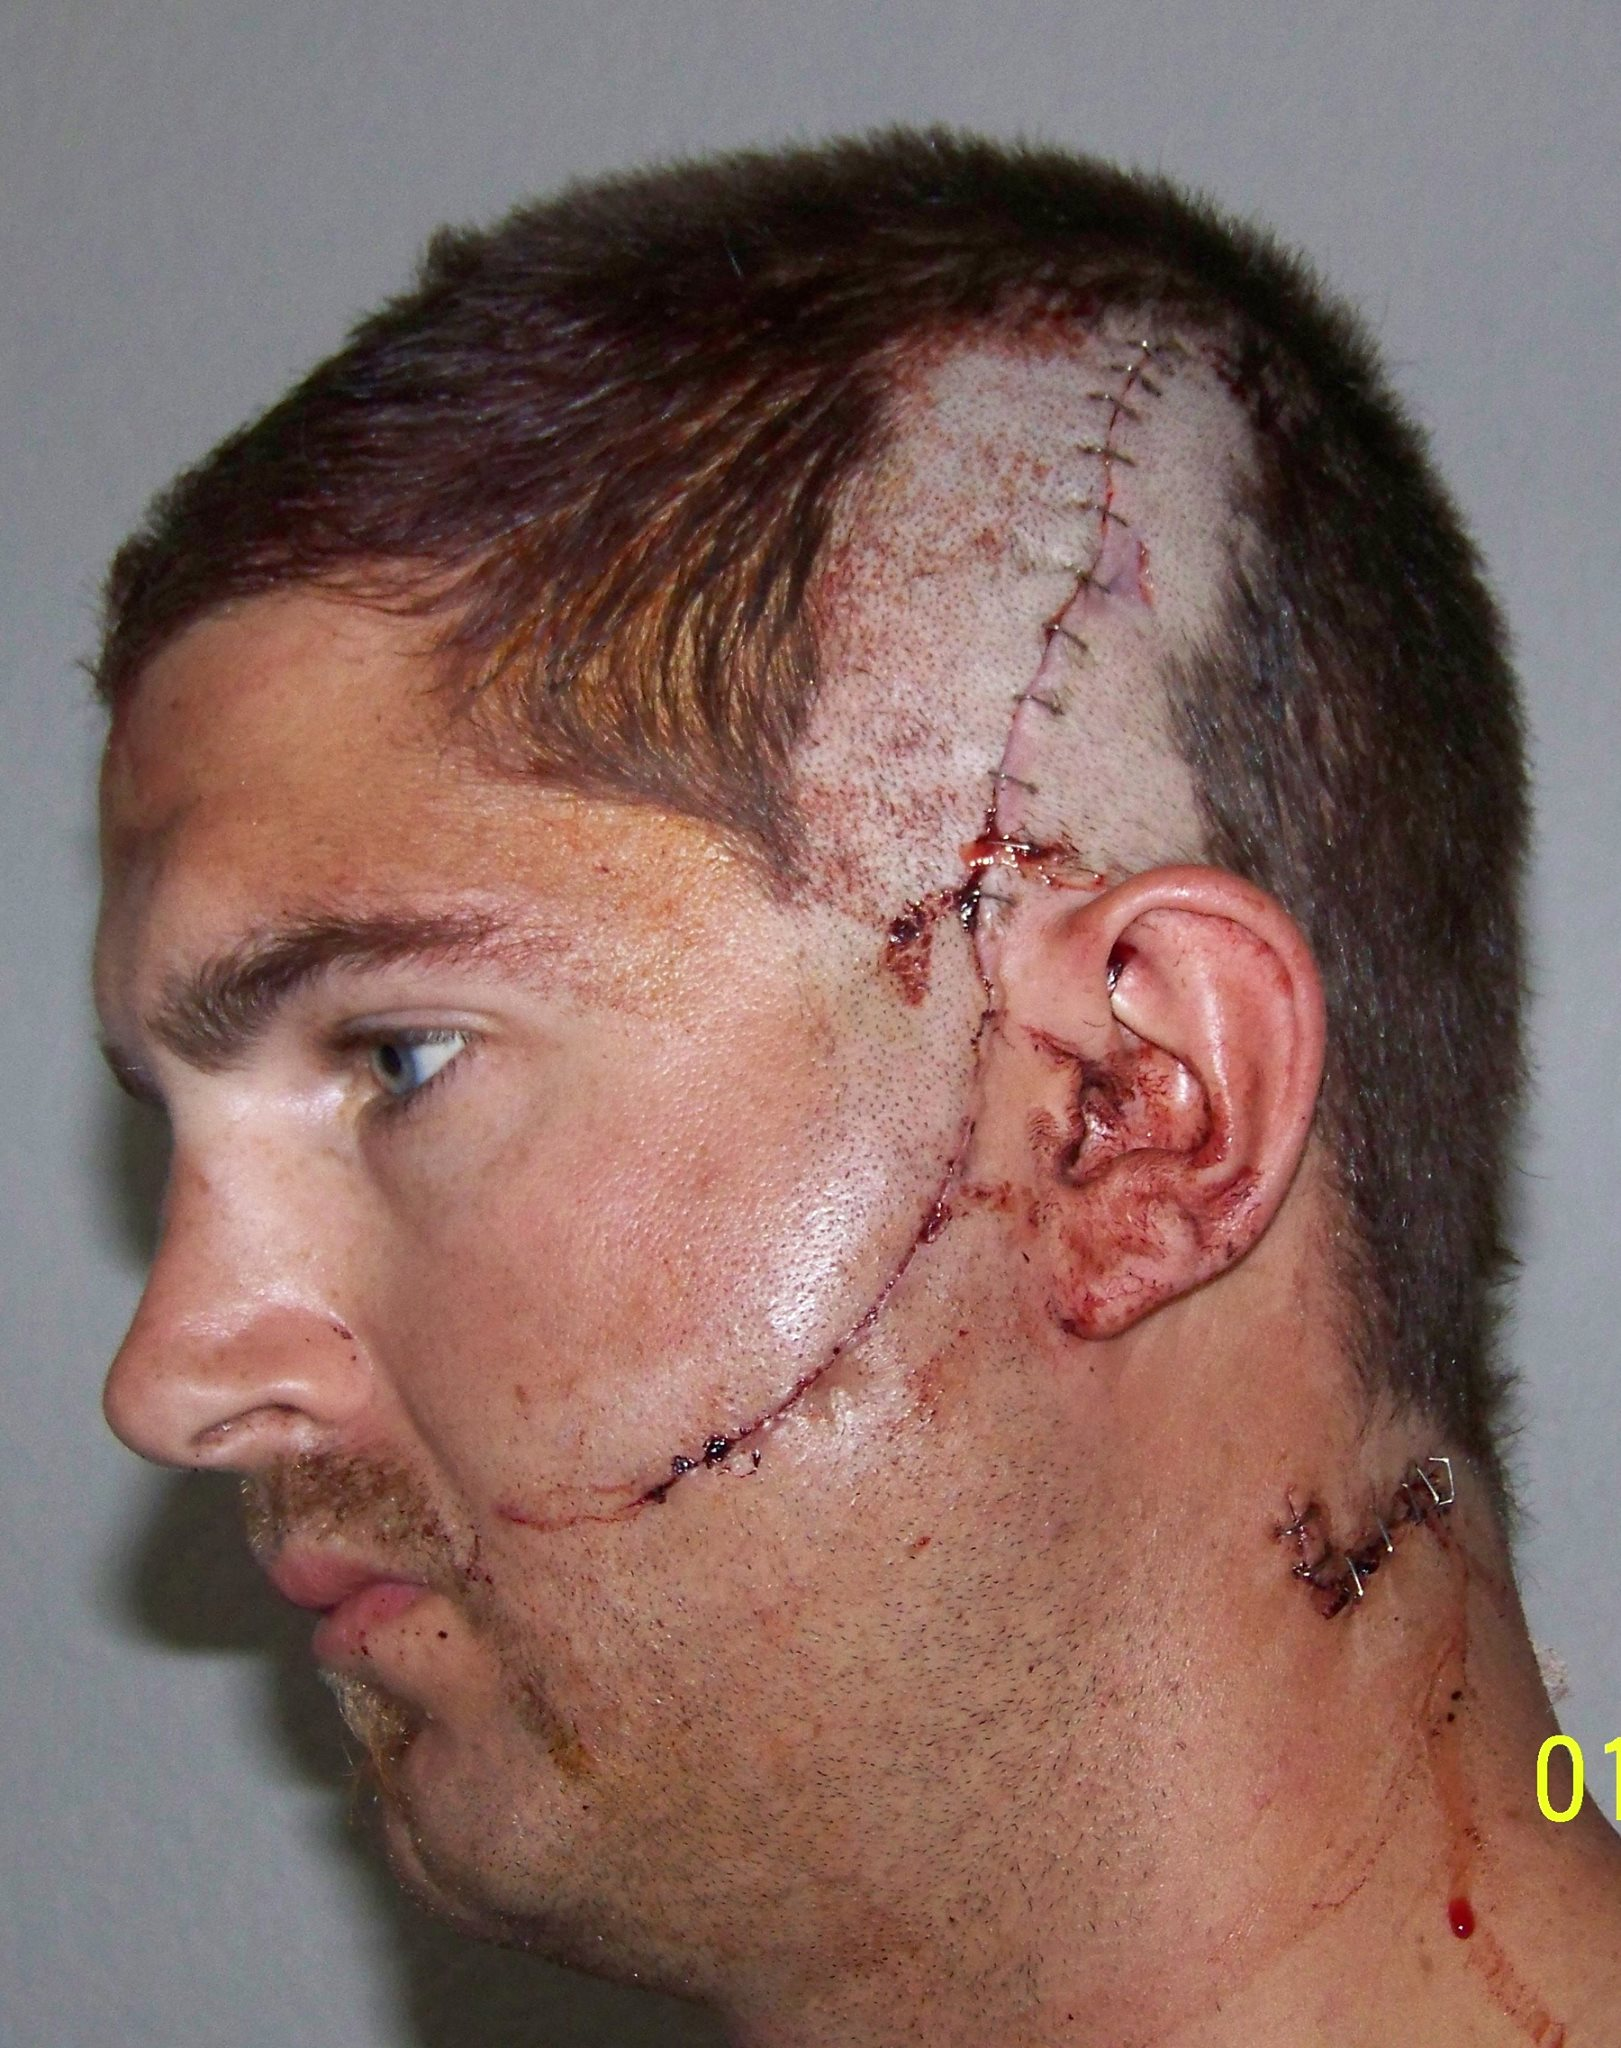 Tyson after being released from the hospital days after the stabbing